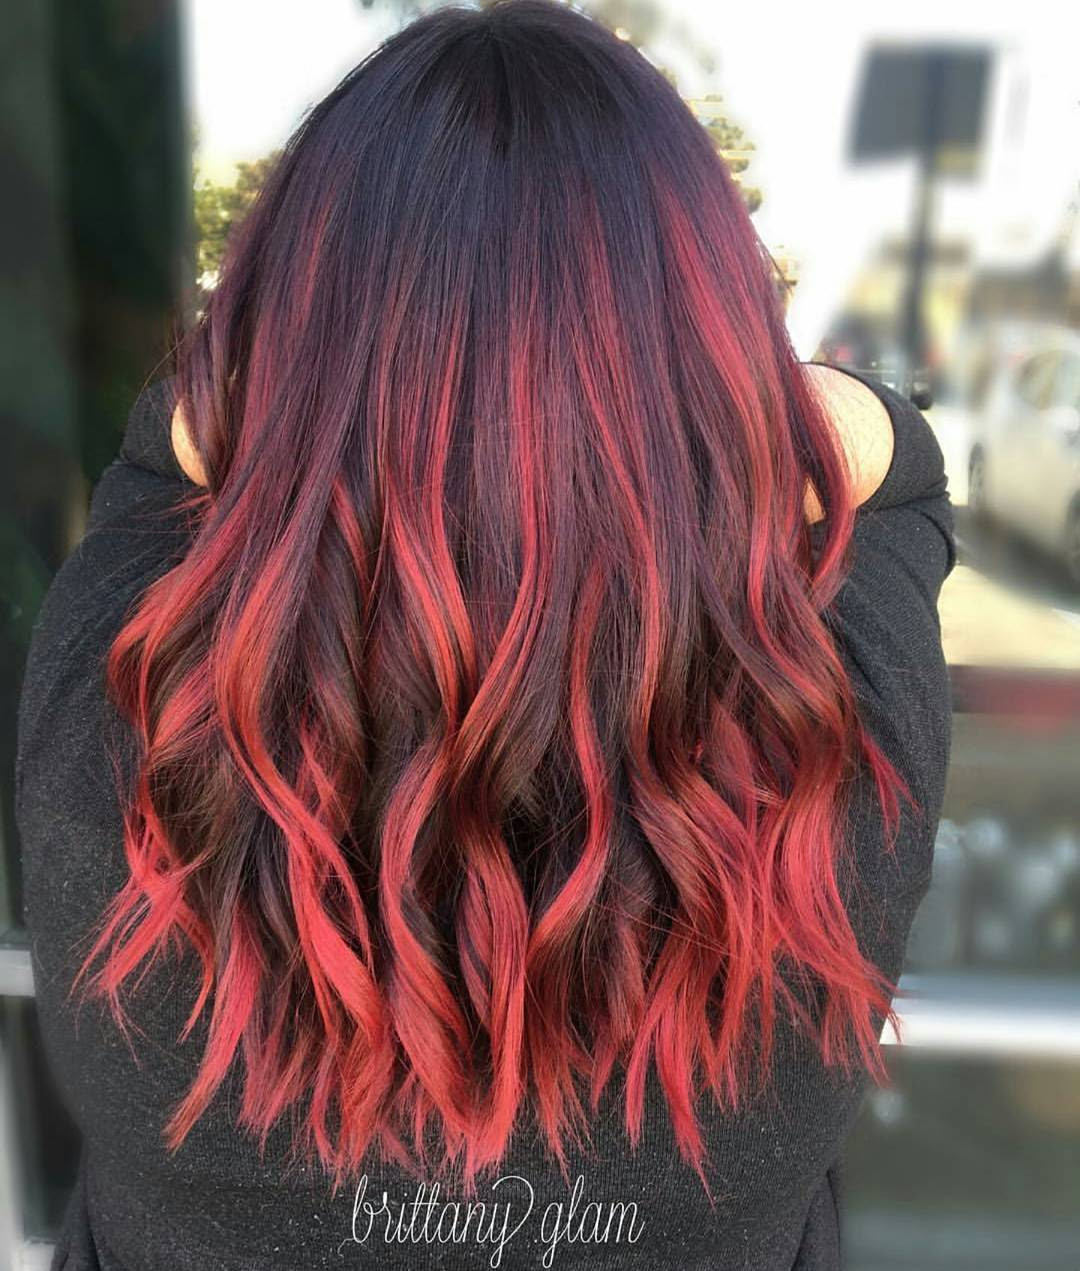 10 Medium Length Hairstyles For Thick Hair In Super Sexy Colors